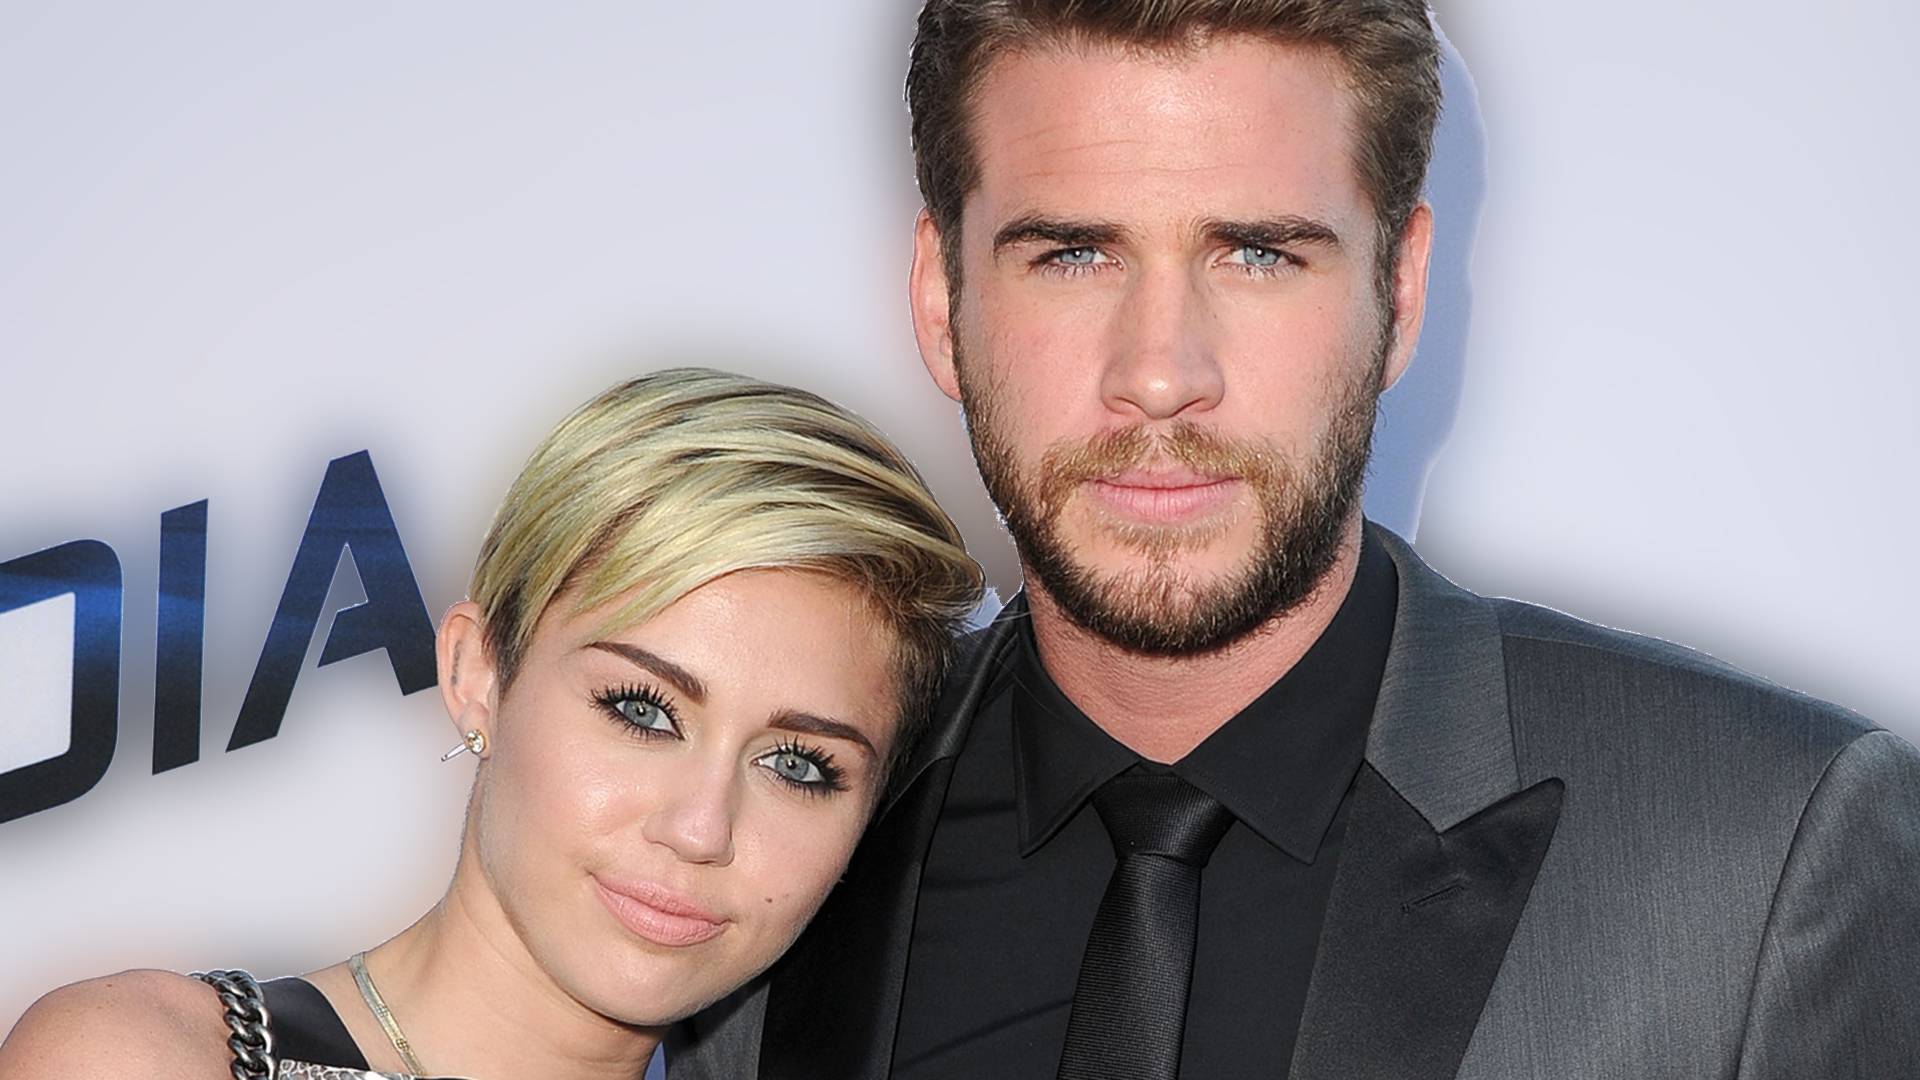 Miley Cyrus shares sweet pics with Liam Hemsworth on his birthday – see them